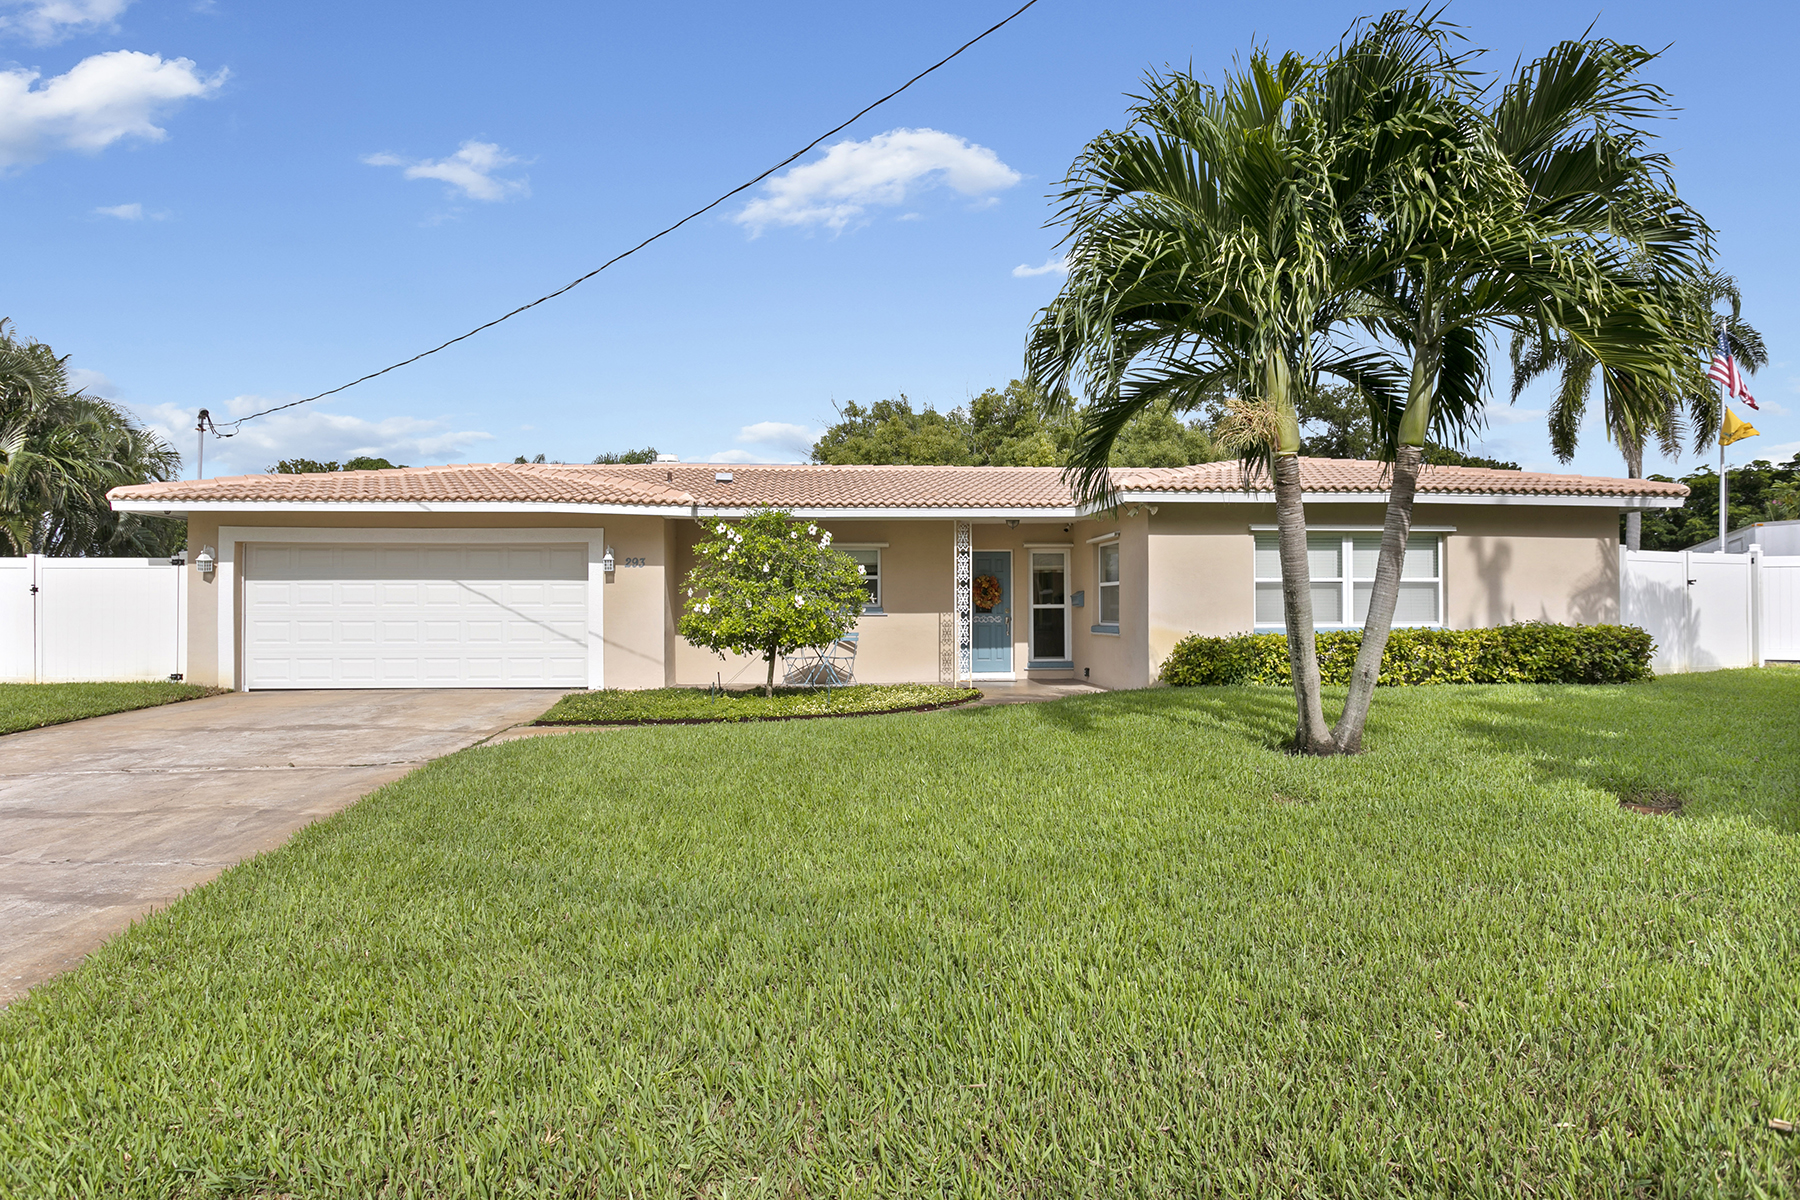 Single Family Homes for Sale at 293 94th Ave Ne St. Petersburg, Florida 33702 United States